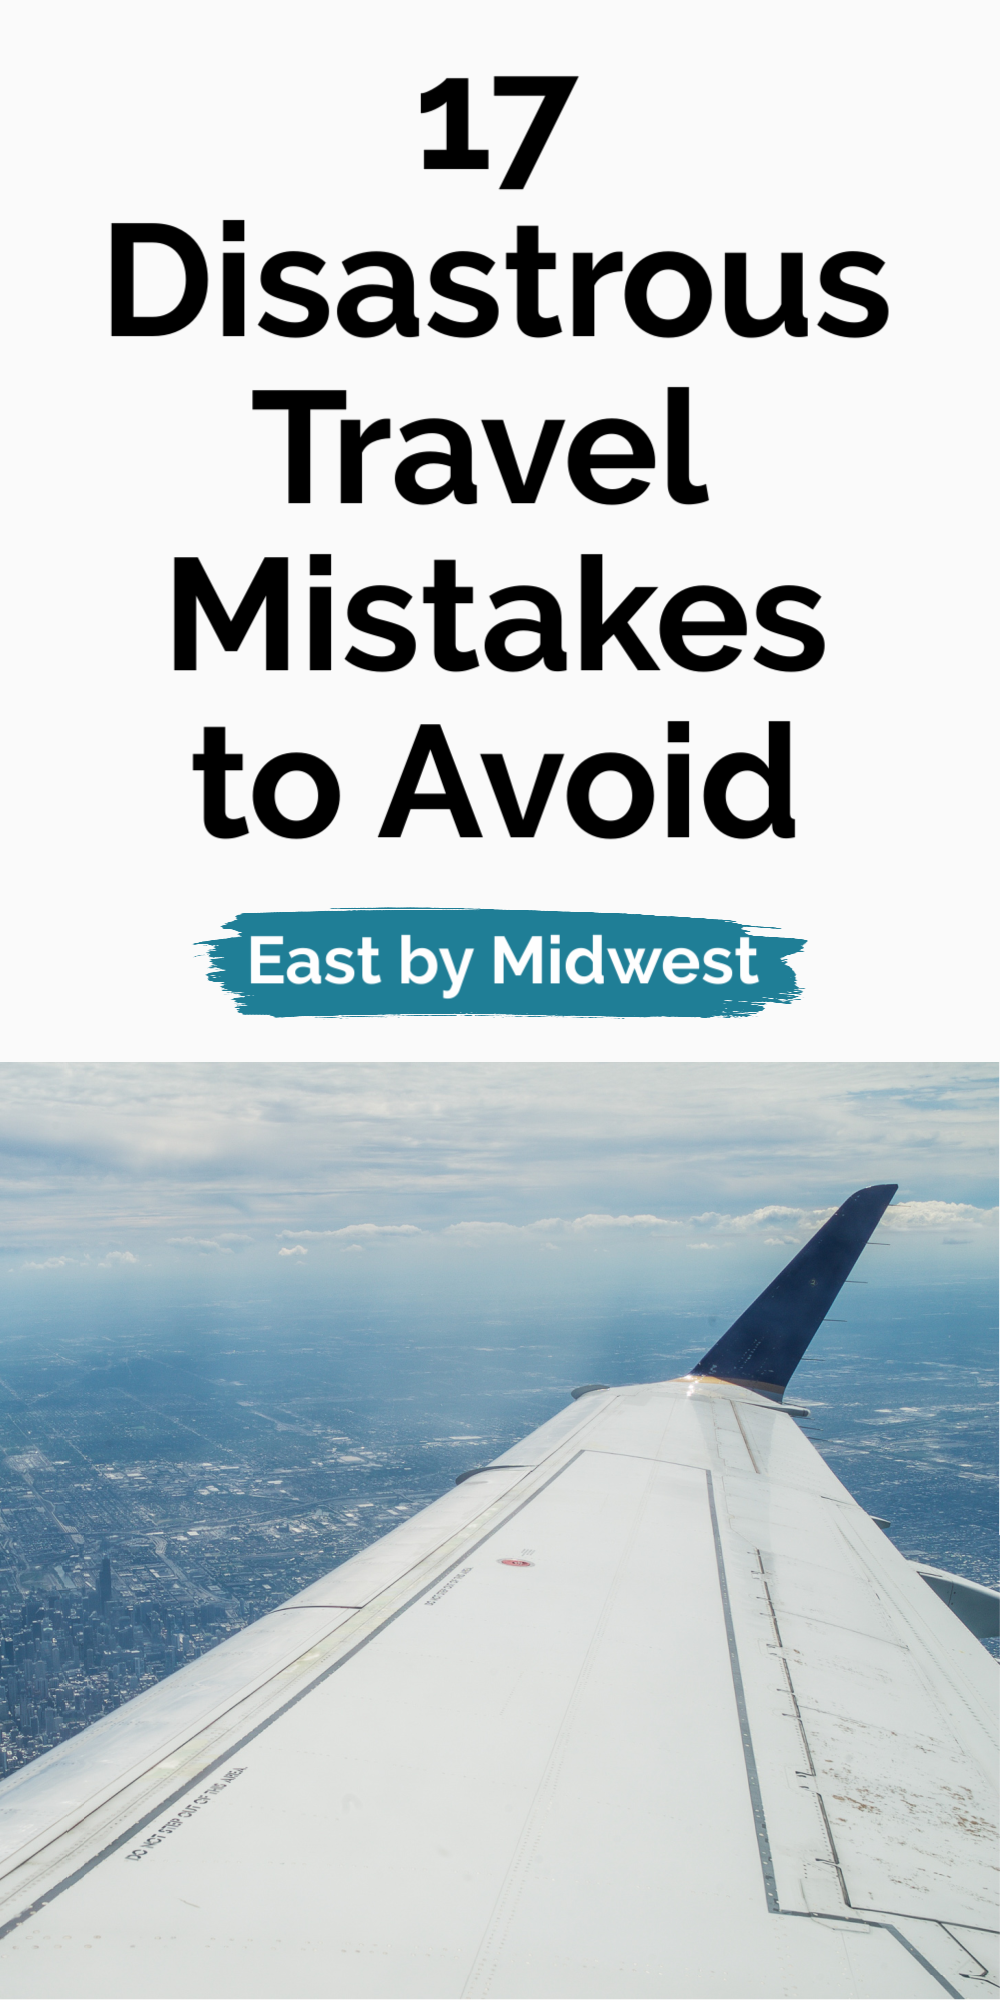 17 Disastrous Travel Mistakes and How to Avoid Them